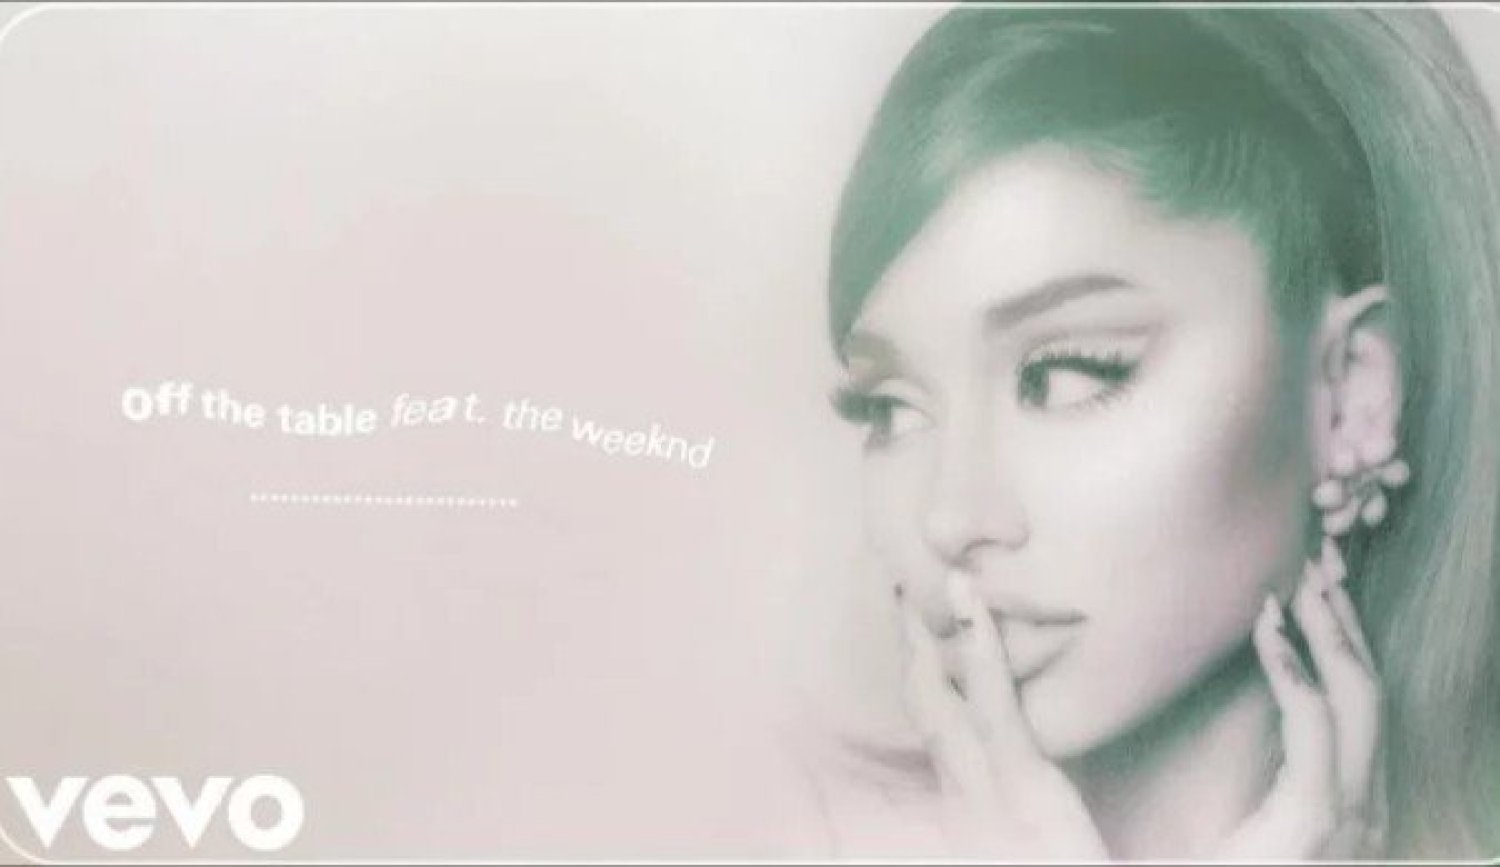 DOWNLOAD MP3: Ariana Grande Ft. The Weeknd – Off The Table